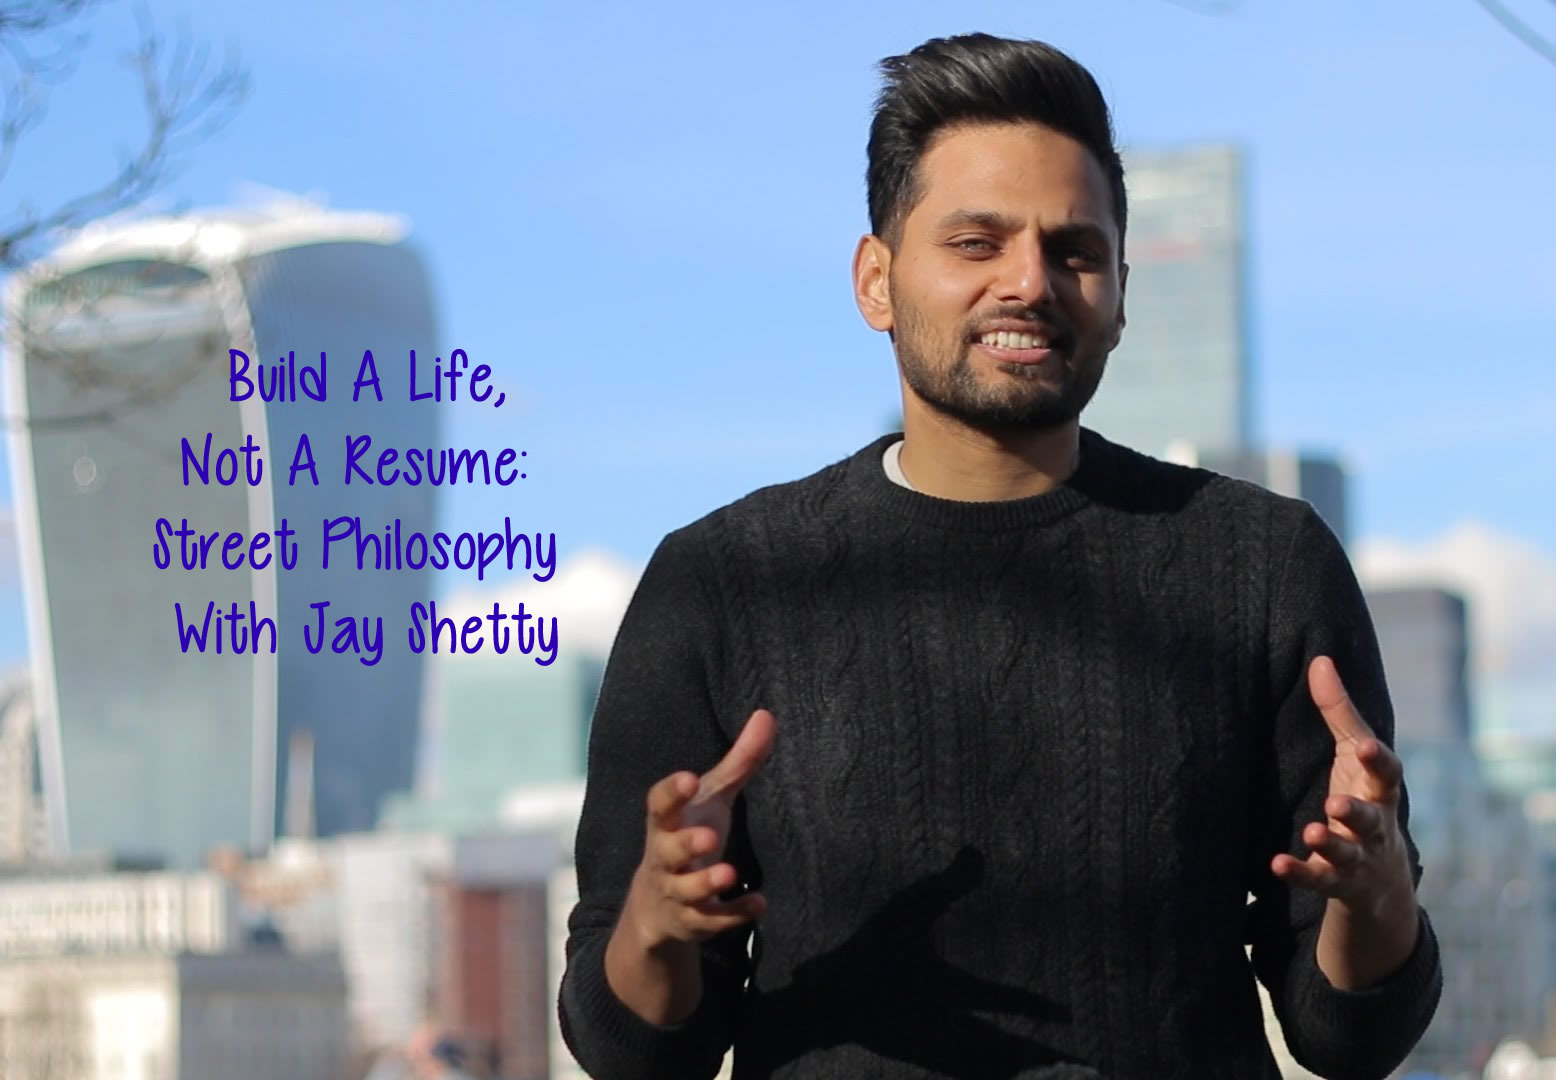 Build A Life Not A Resume Street Philosophy With Jay Shetty